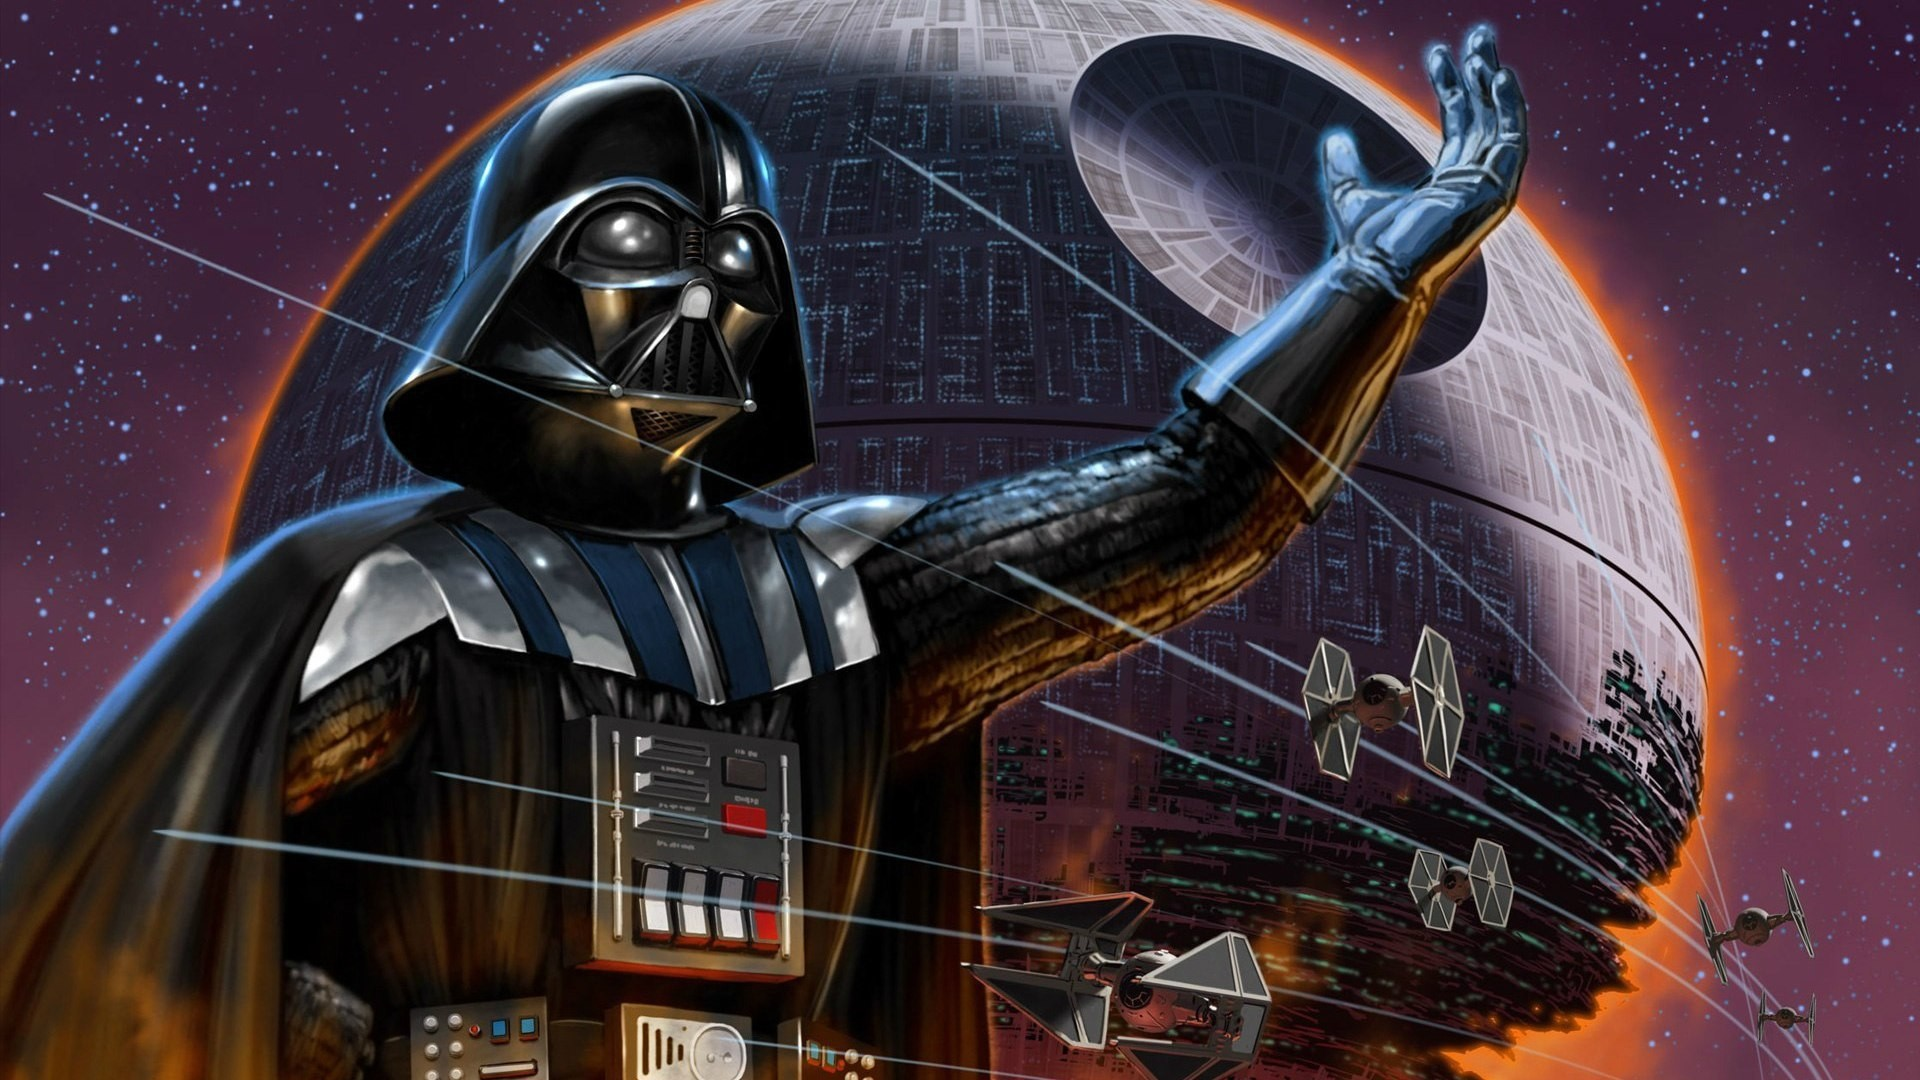 Darth Vader Wallpaper Free Download